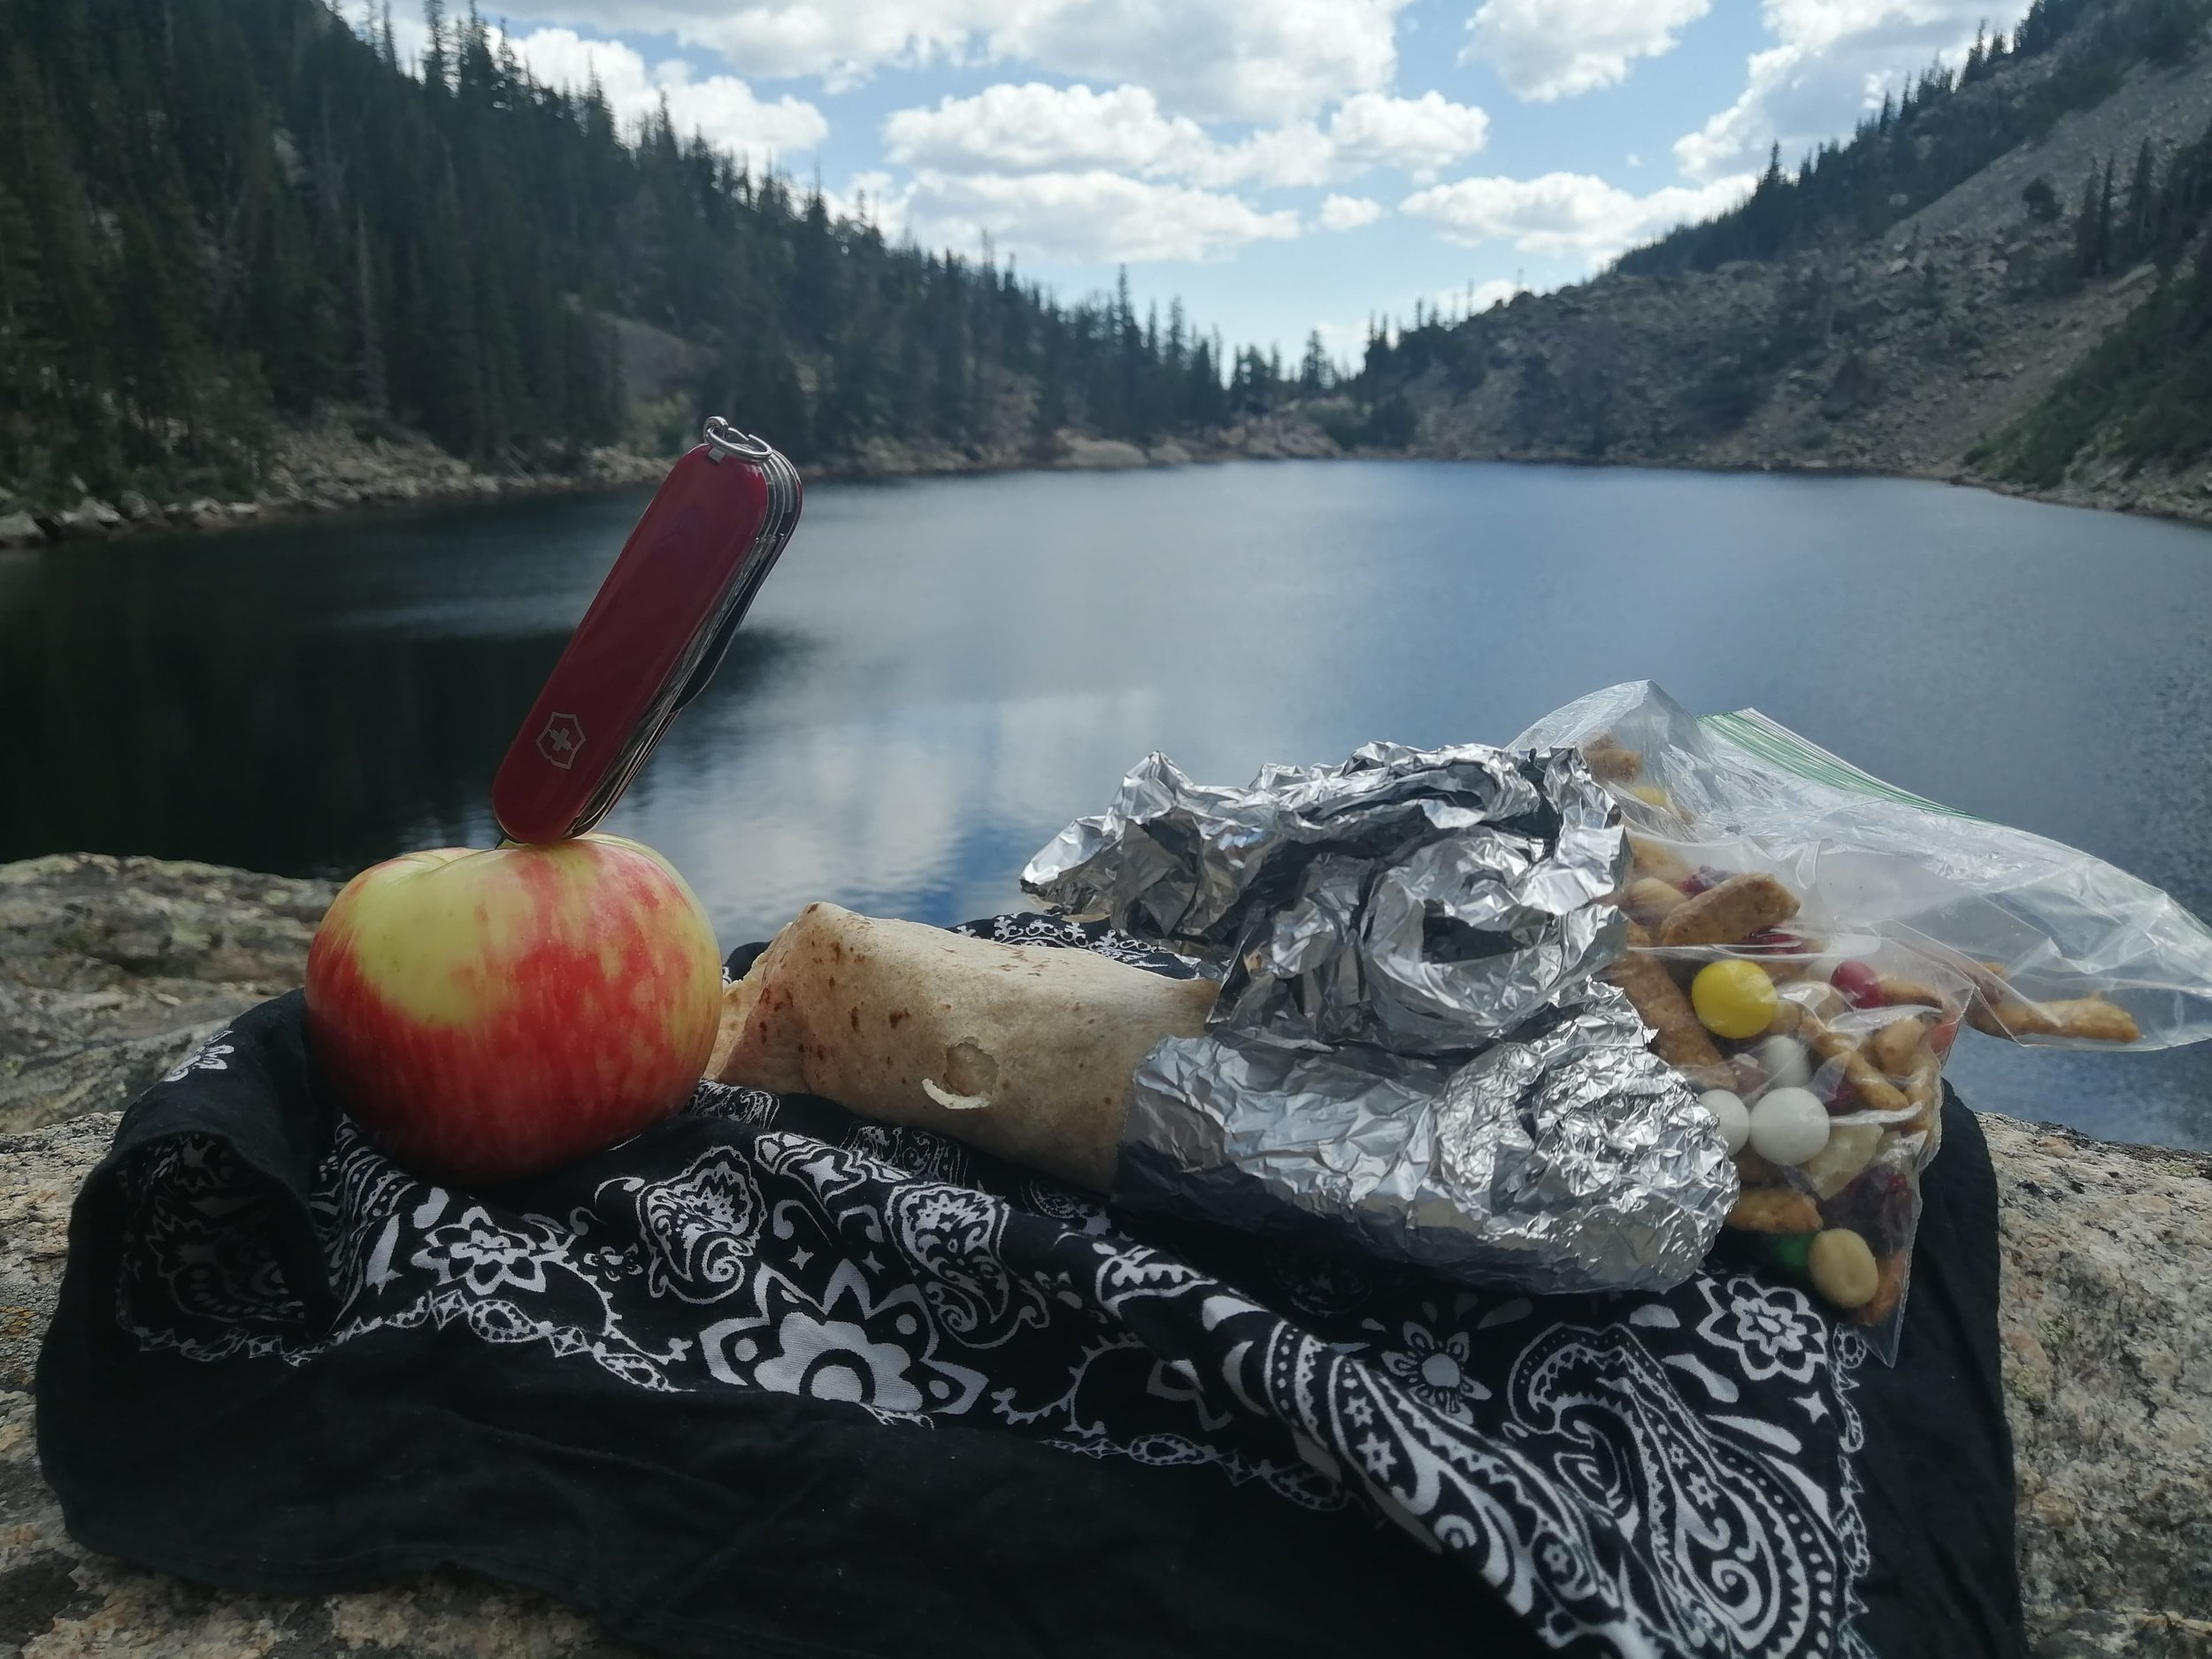 Gourmet Rocky Mountain Lunch at Emerald Lake.